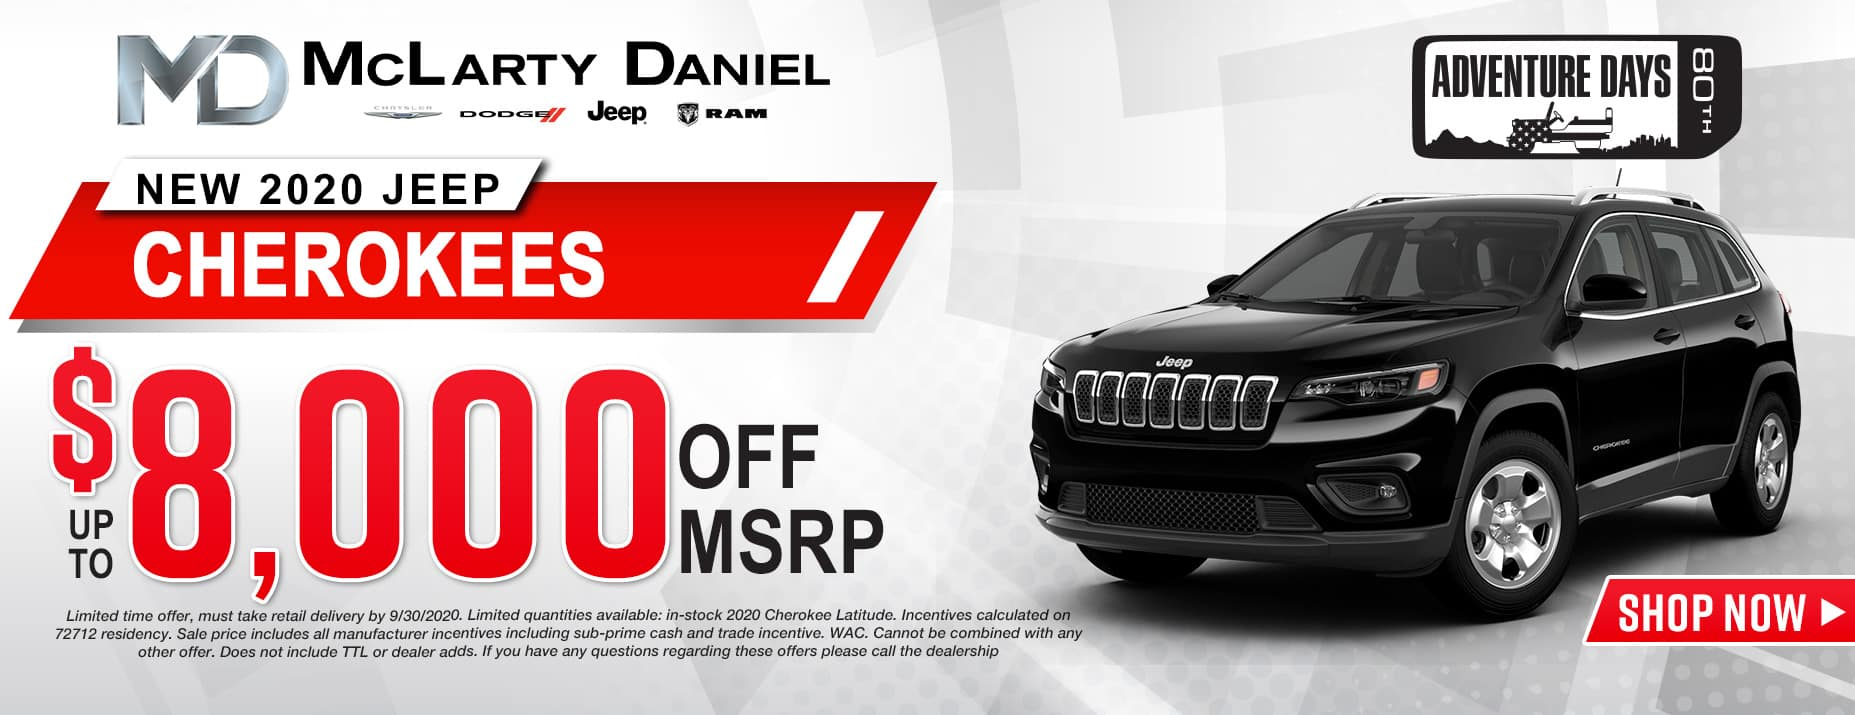 2020 JEEP CHEROKEES - UP TO $8,000 OFF!